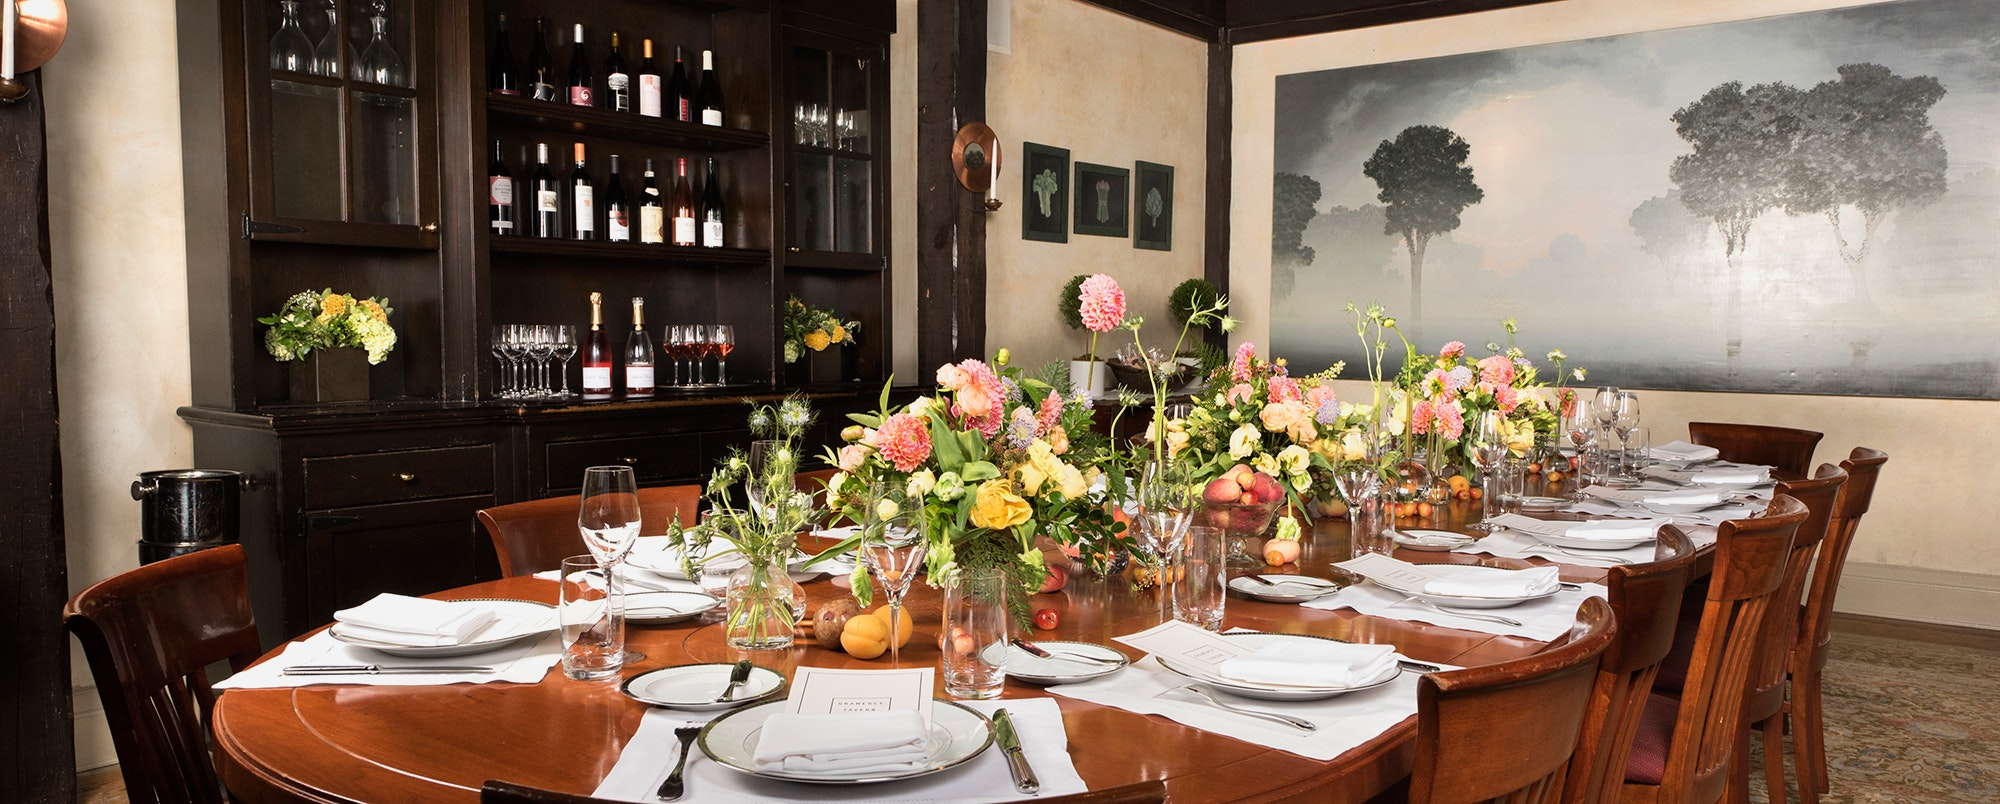 Charmant Private Dining At Gramercy Tavern